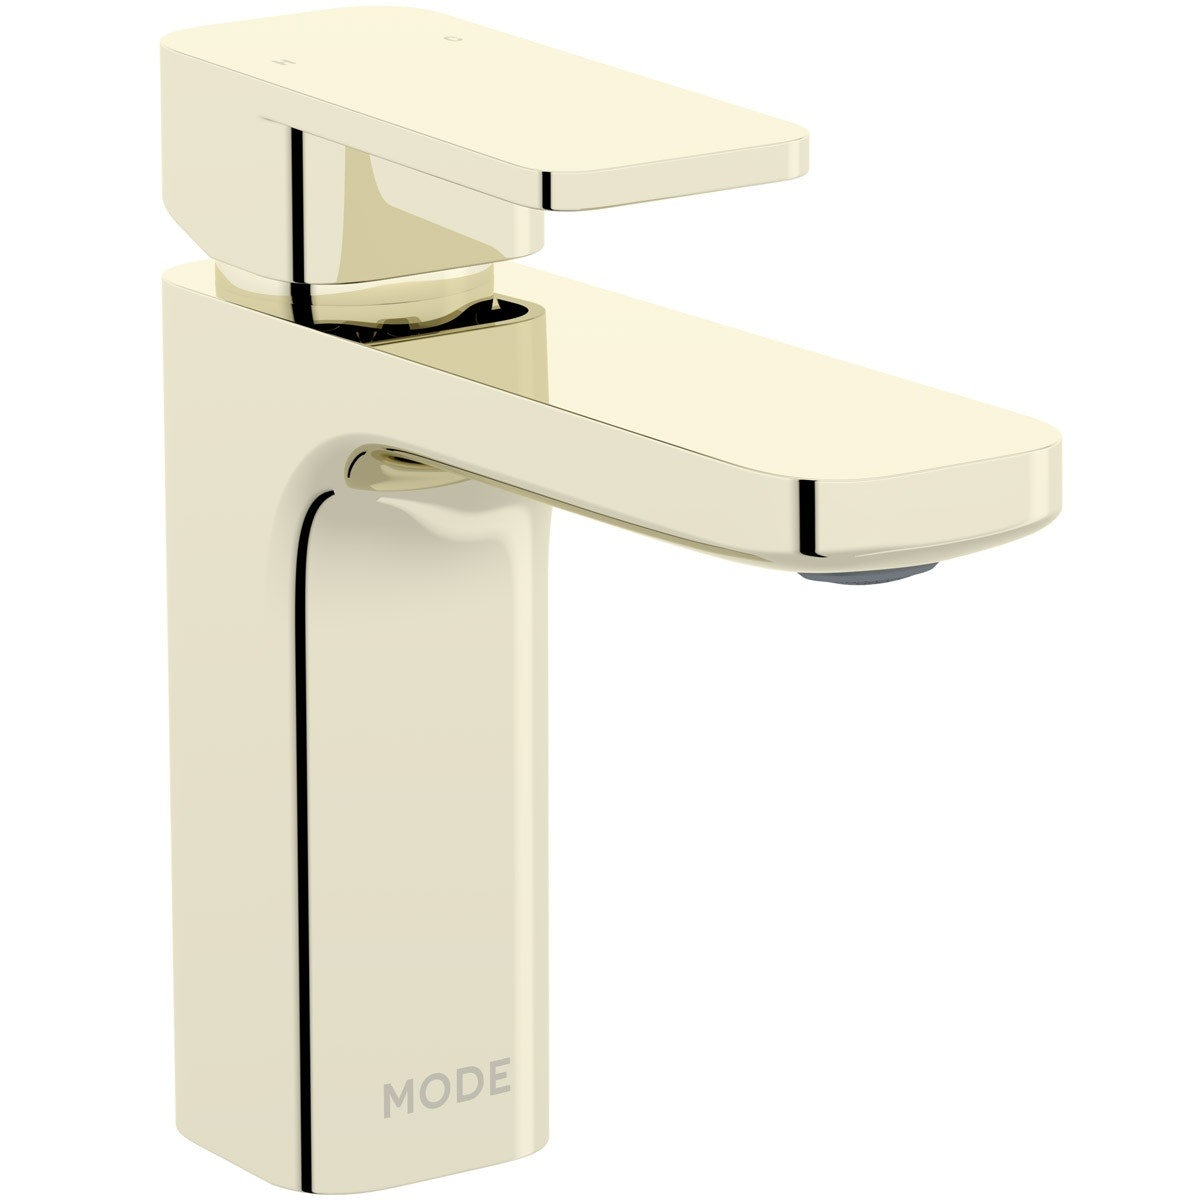 Mode Spencer square gold basin mixer tap offer pack